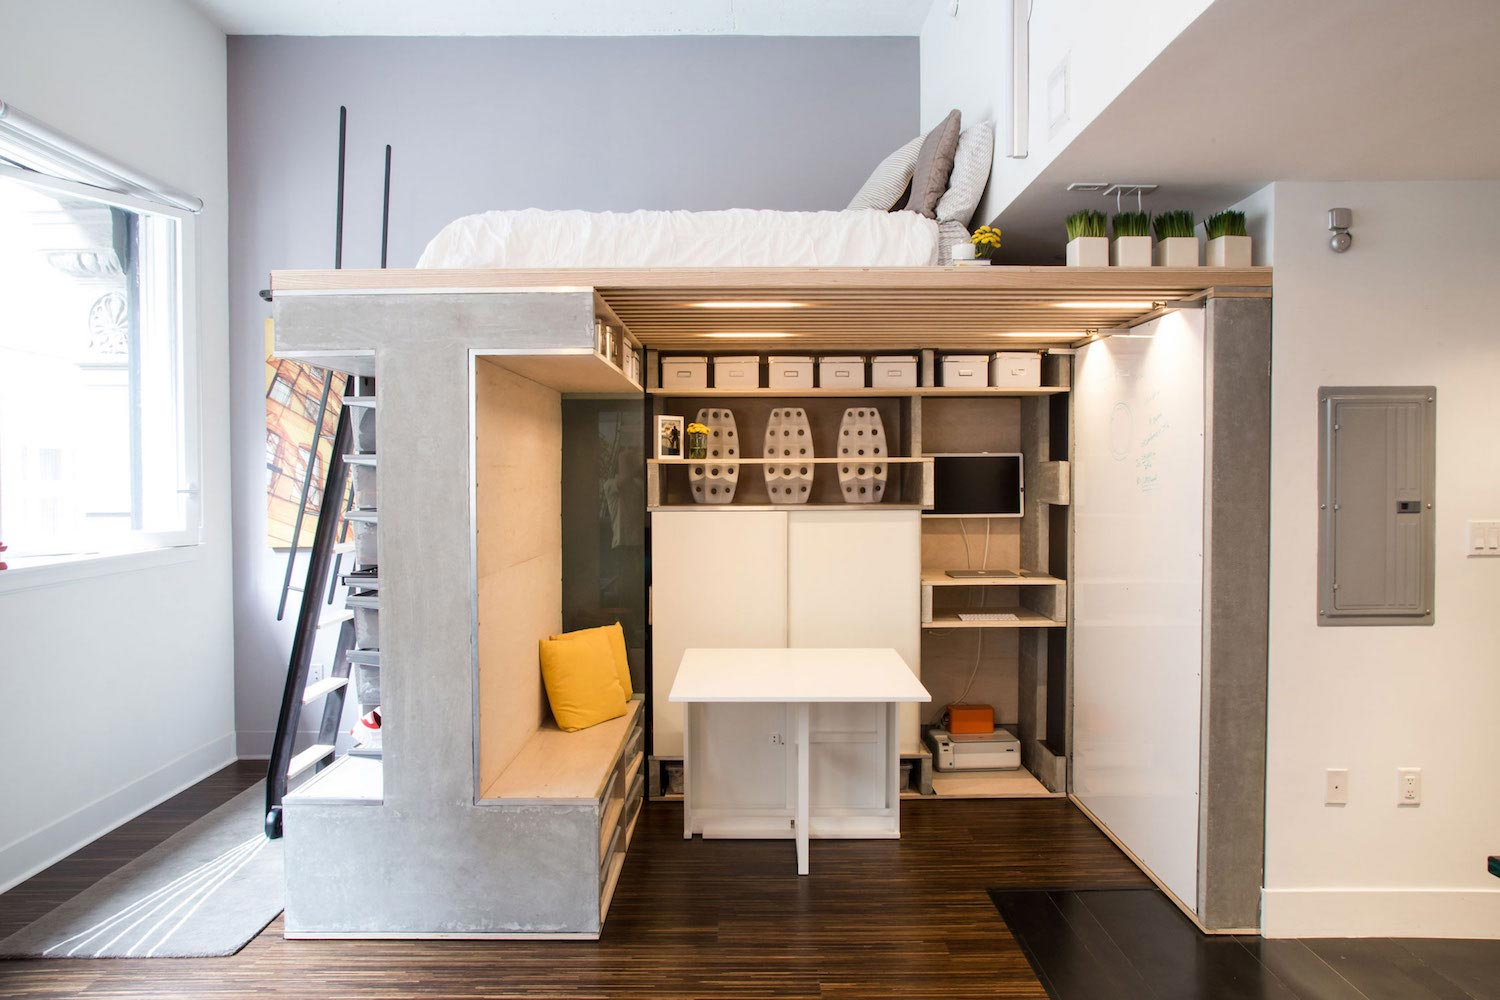 Tiny domino loft located in san francisco designed by - Foto mezzanine ...